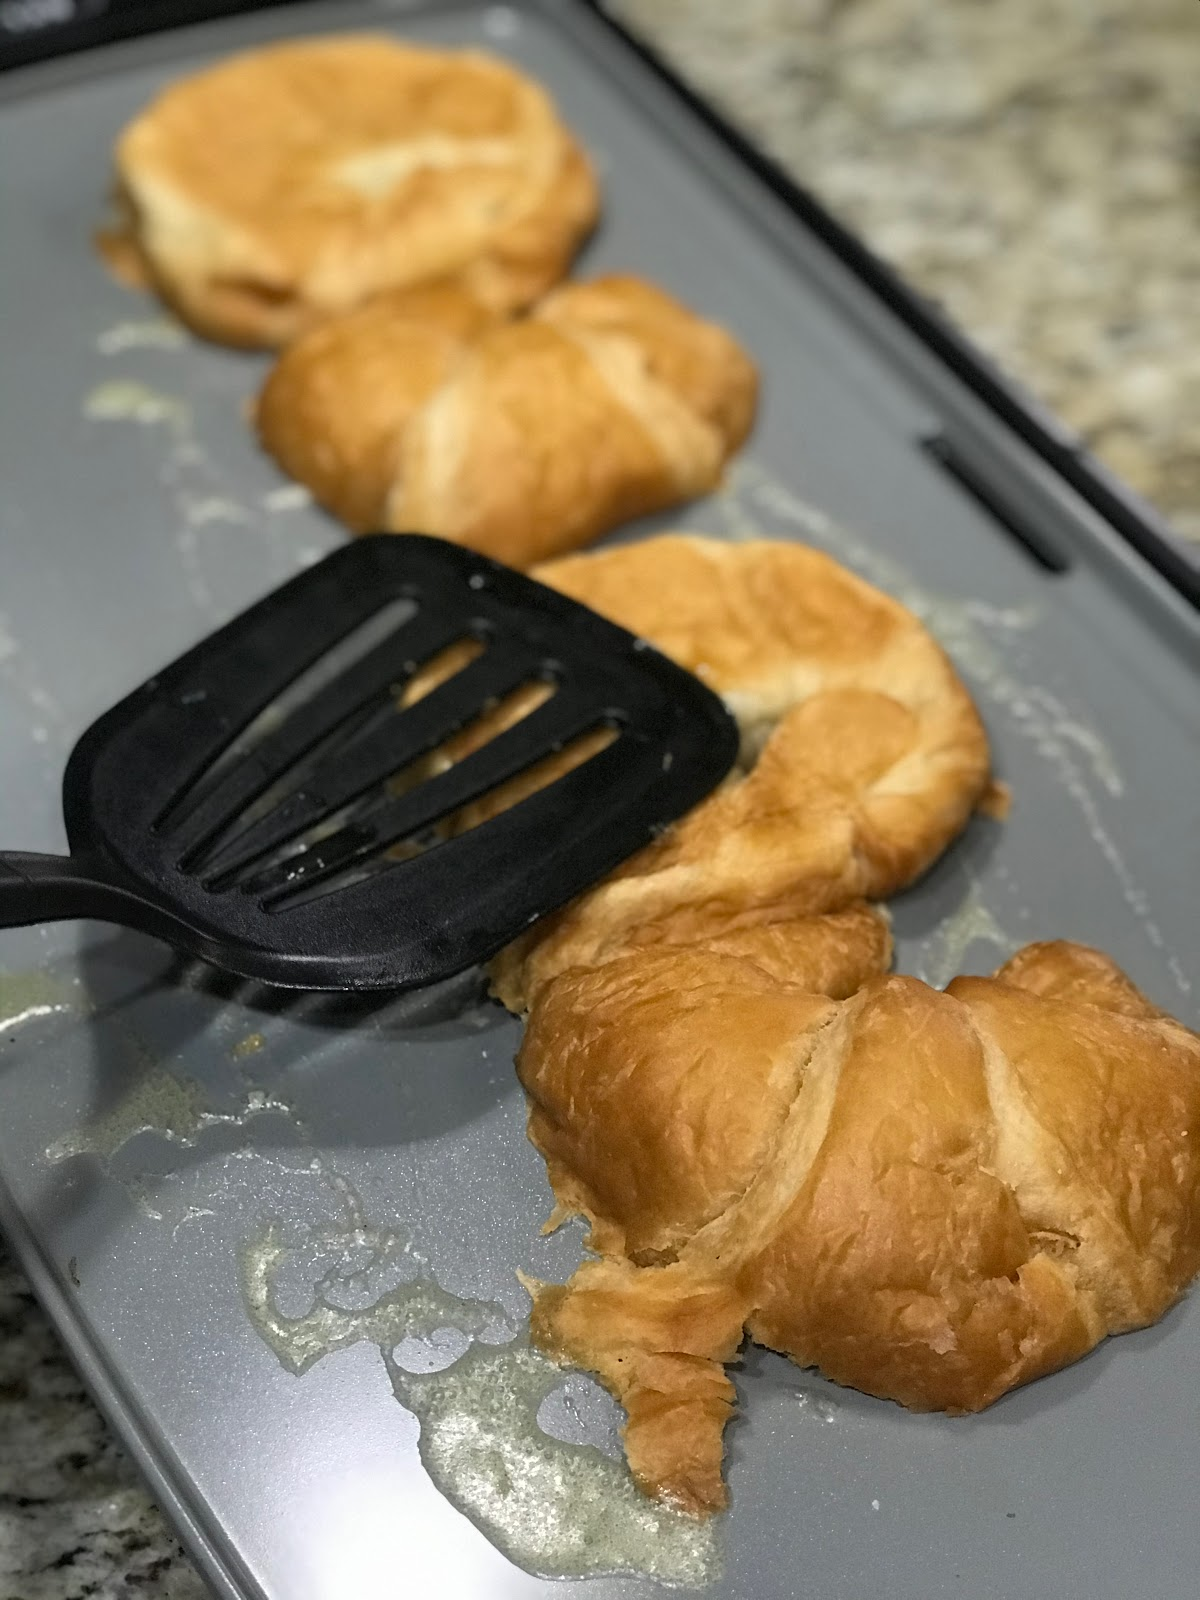 Step one is to fry croissants to make sweet fried pear sammich